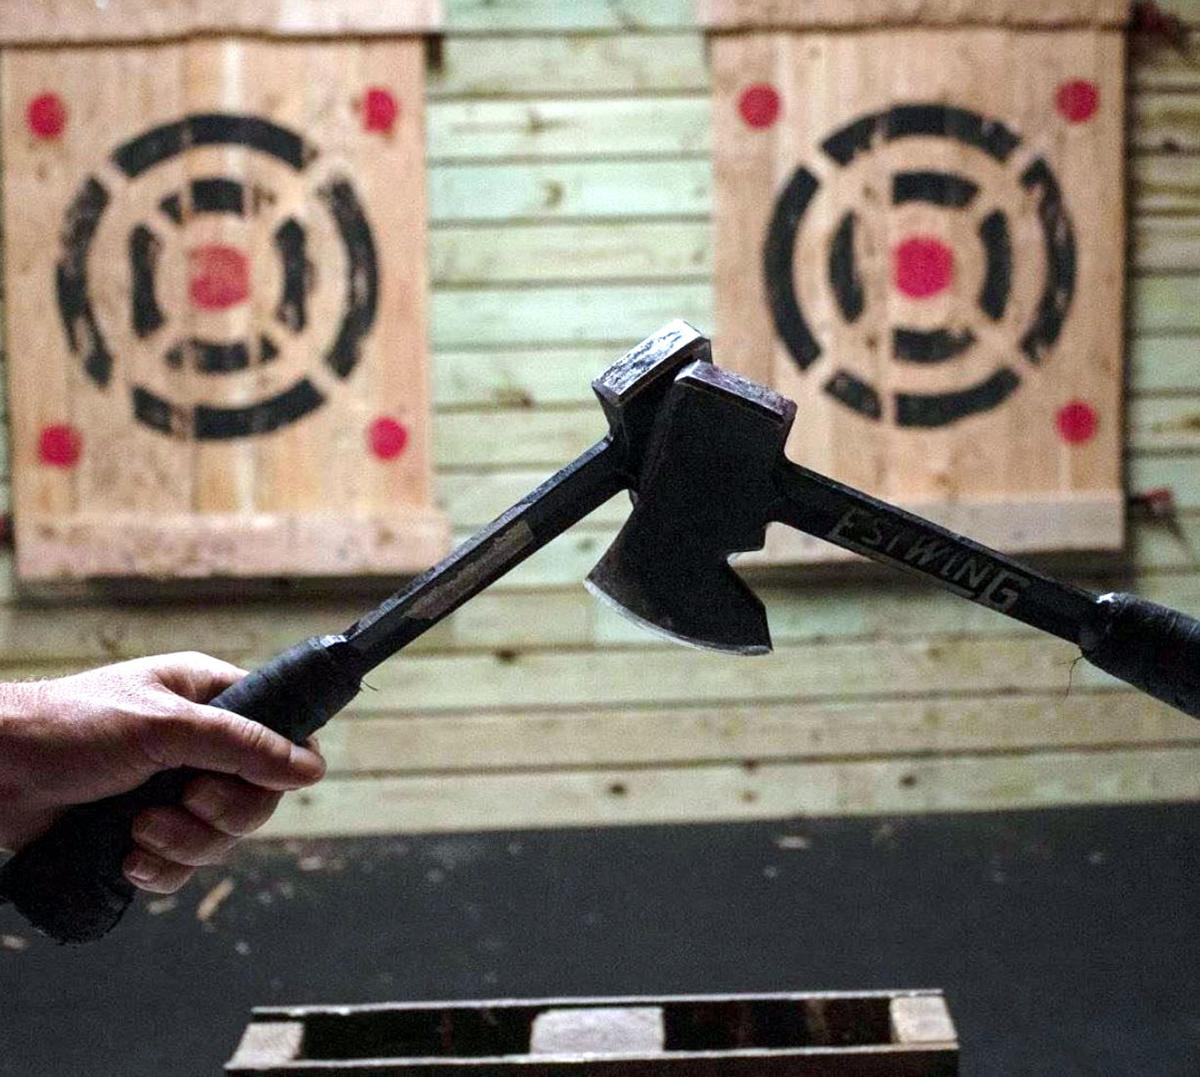 Unique Axe-Throwing Venue to Open in West Chester